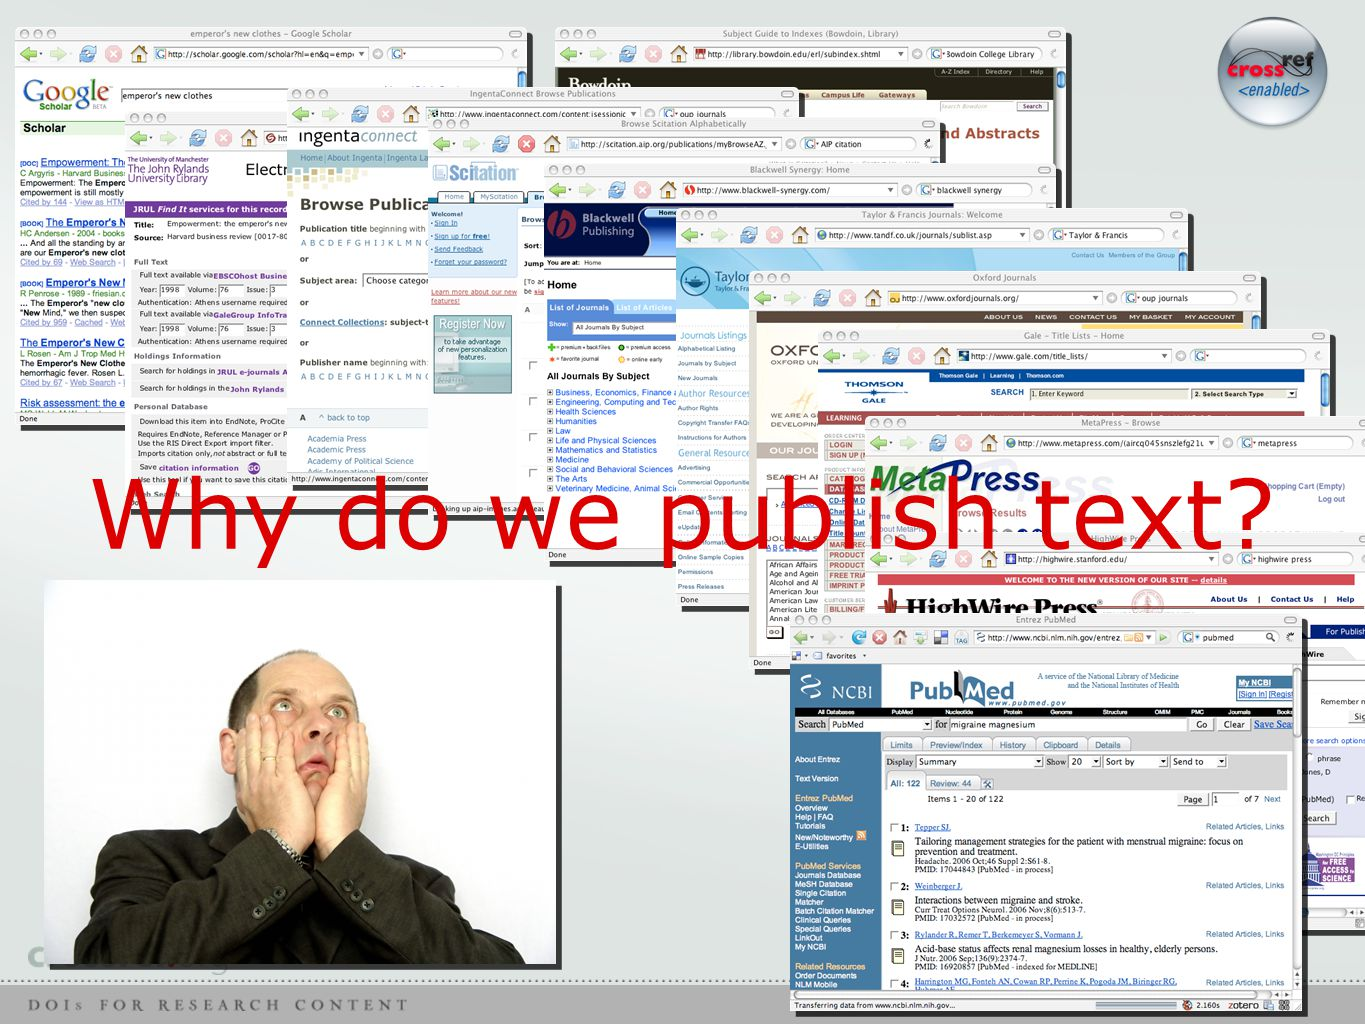 Why do we publish text